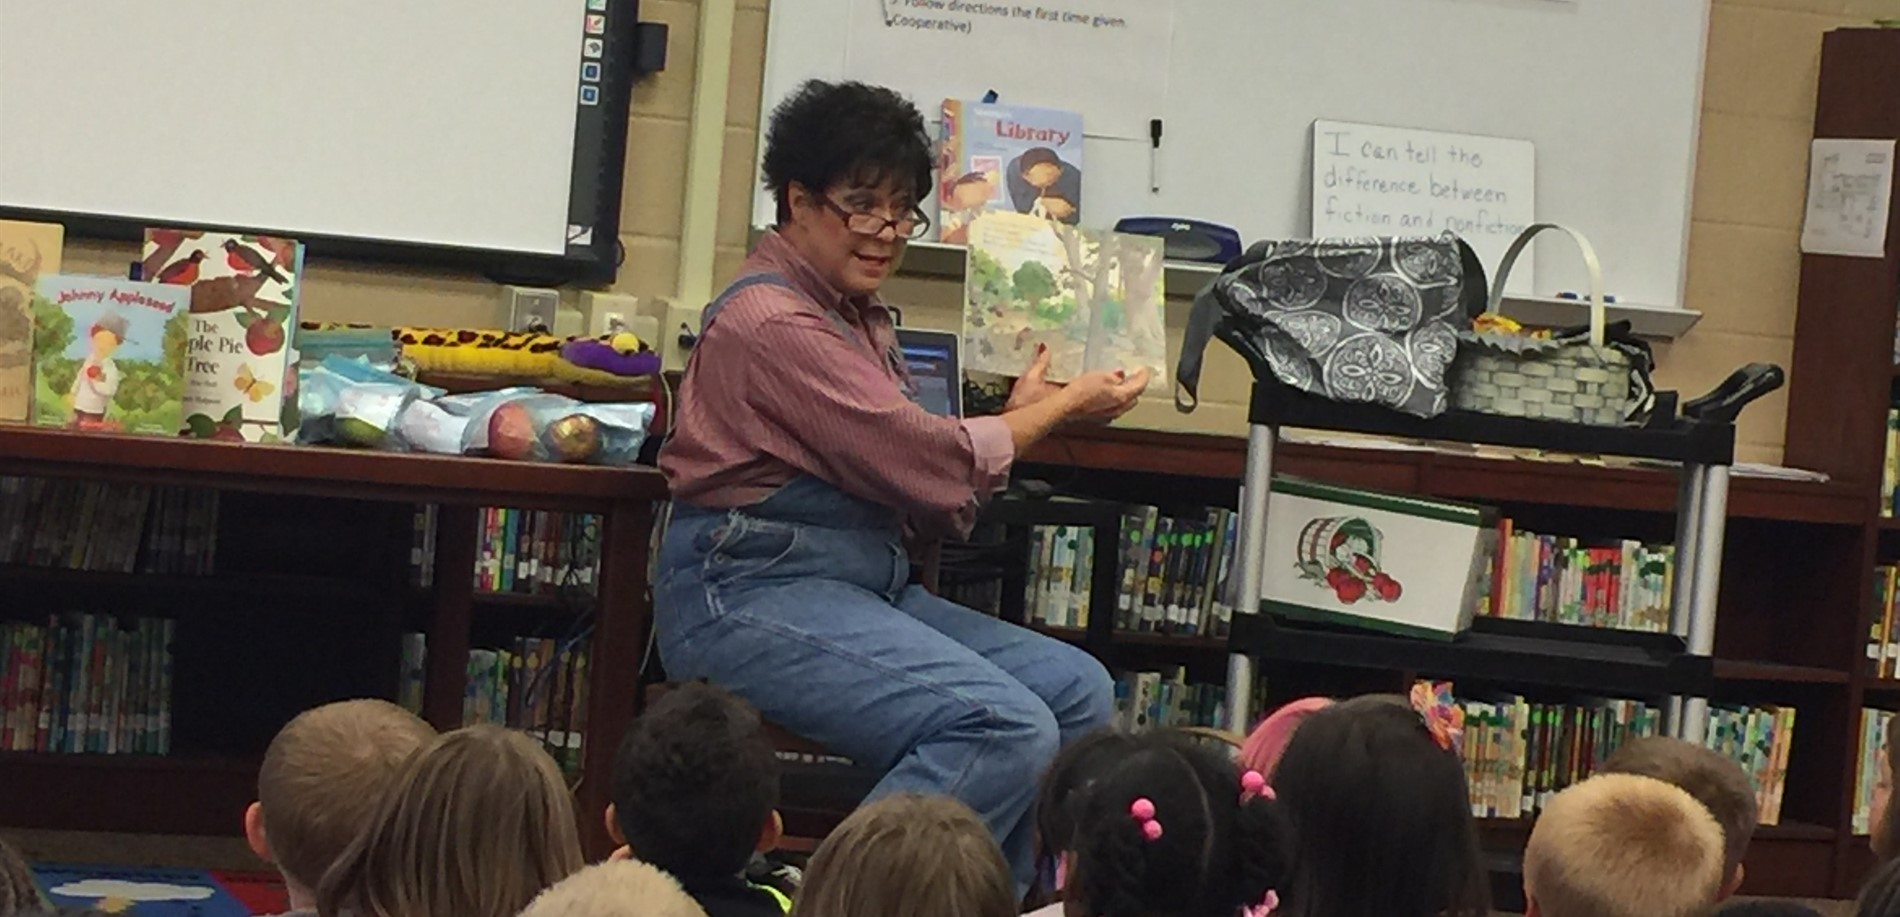 Renee Skaggs shared stories about Johnny Appleseed to first grade students.